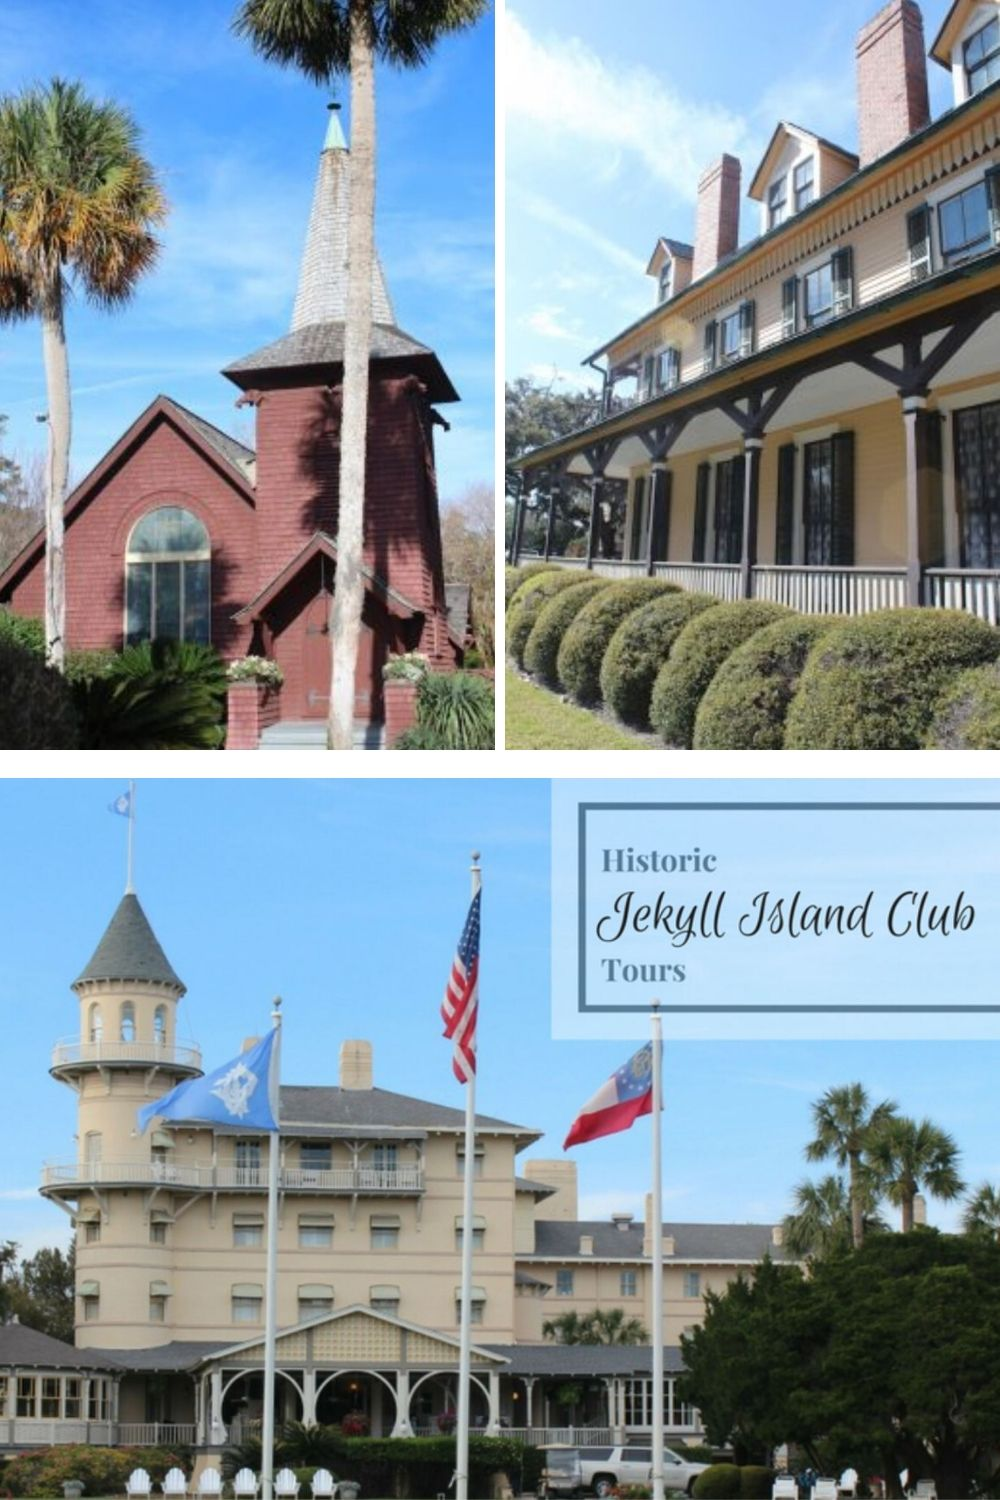 Looking for fun things to do on Jekyll Island, Georgia? A Jekyll Island Club Tour is fun for all ages. Hear stories of the rich and famous, learn about architecture and enjoy the trolley ride. #jekyllisland #jekyllislandgeorgia #thingstodoinjekyllisland #jekyllislandvacation #jekyllislandhistory #jekyllislandclubresort #jekyllislandtours #jekyllislandgeorgiavacations #goldenisles #goldenislesgeorgia